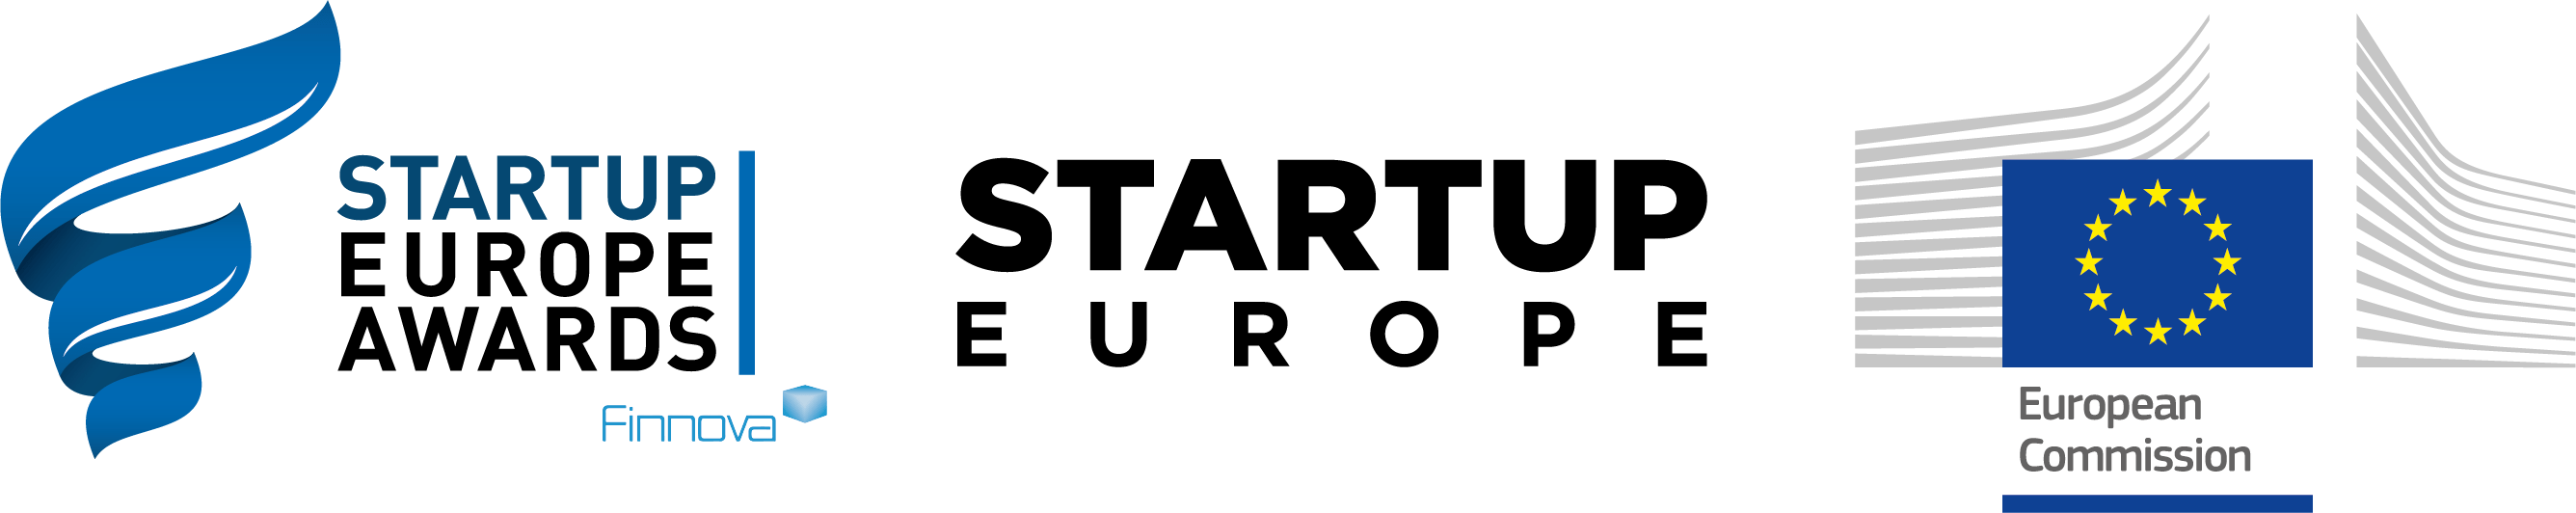 LumaSuite has appeared on the Startup Europe News website